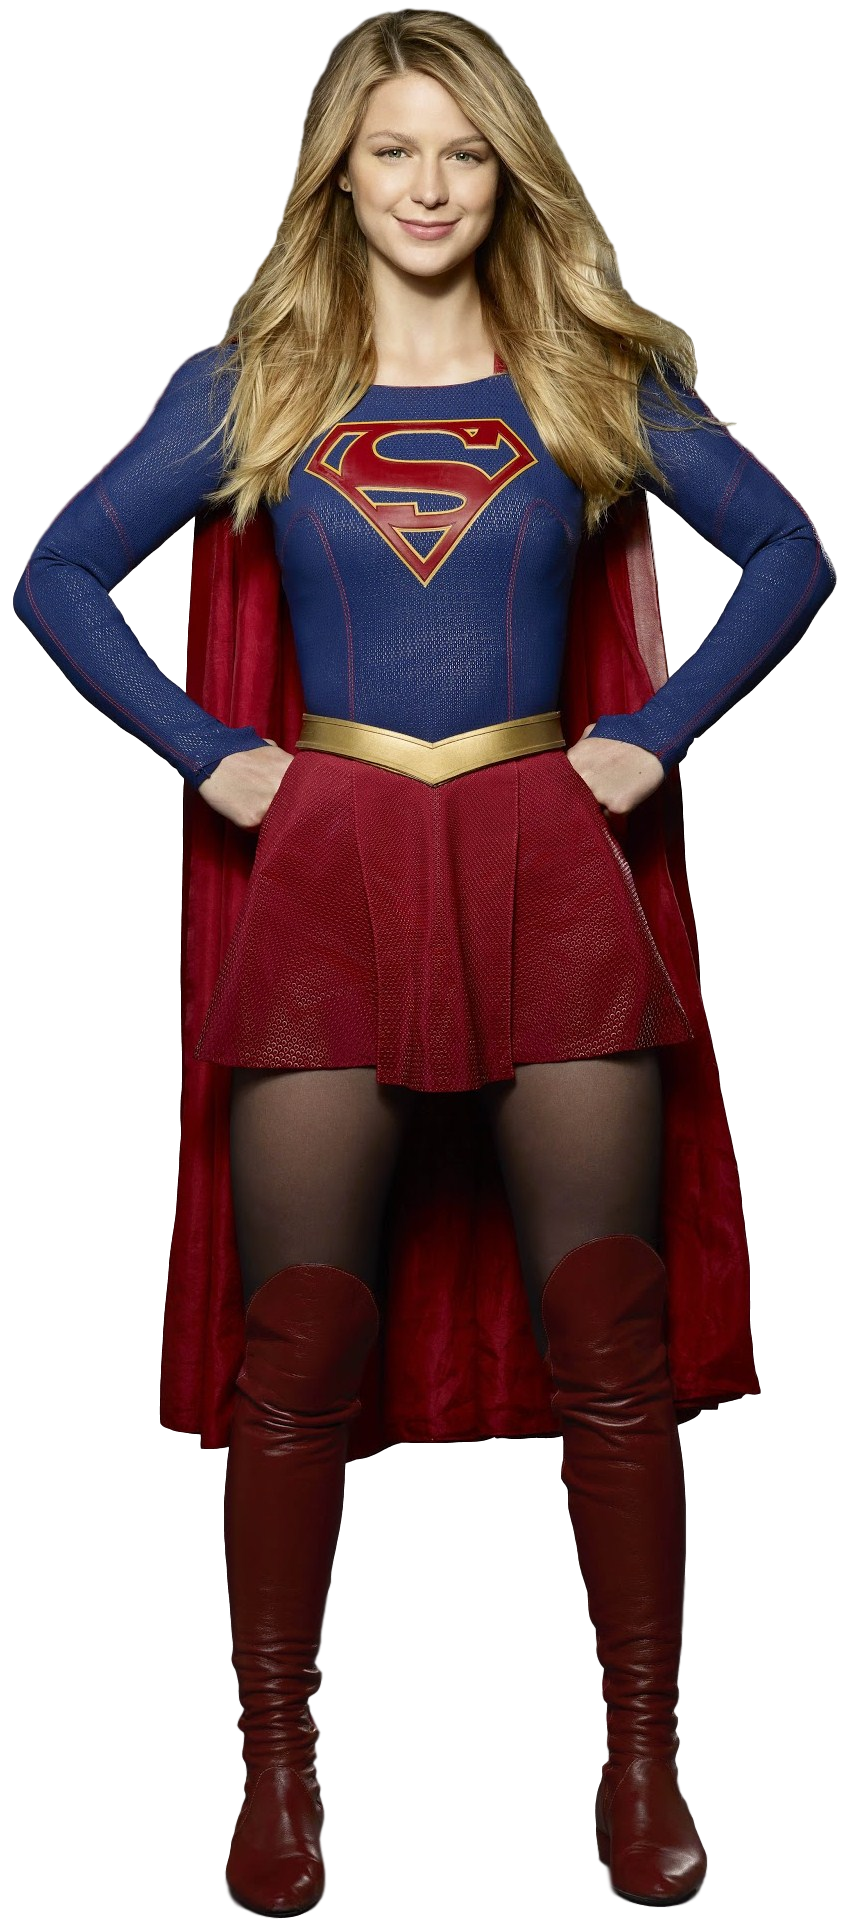 Supergirl cw logo png. Transparent background by camo